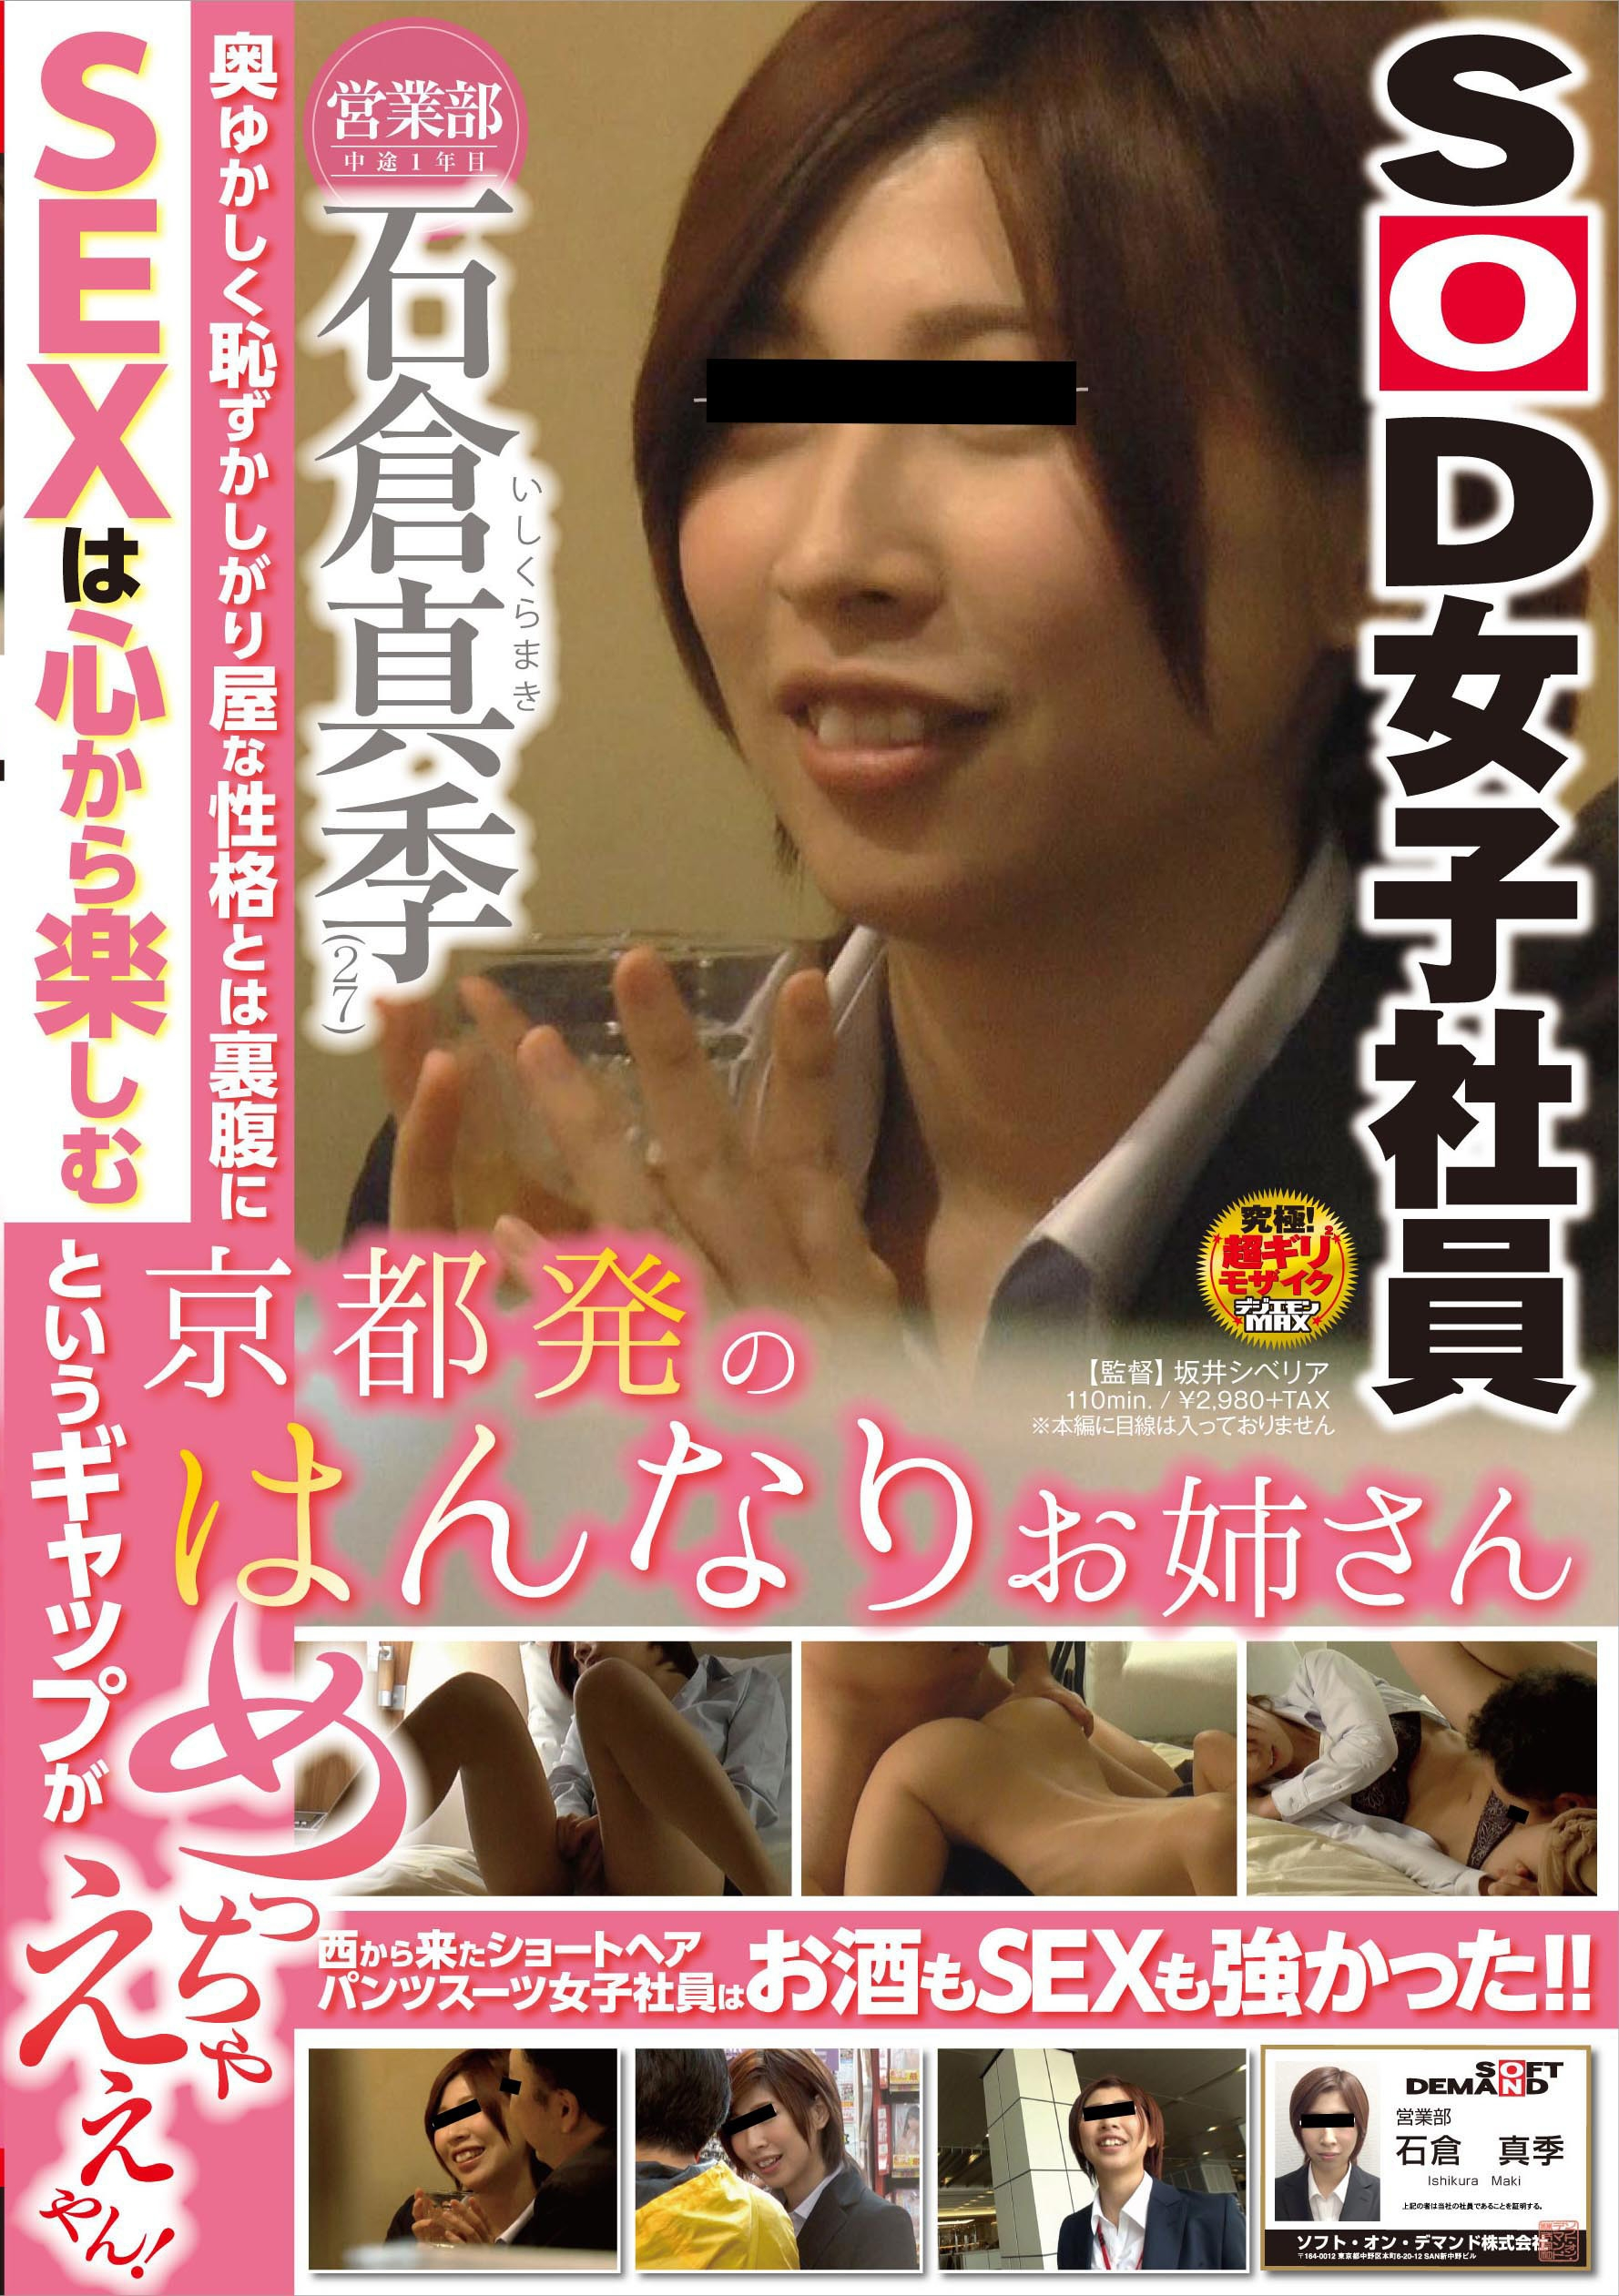 A SOD Female Employee, Sales Department, Maki Ishikura (27), A Gentle Lady From Kyoto, Contrary To Her Courteousness And Shy Personality, Enjoys Sex!